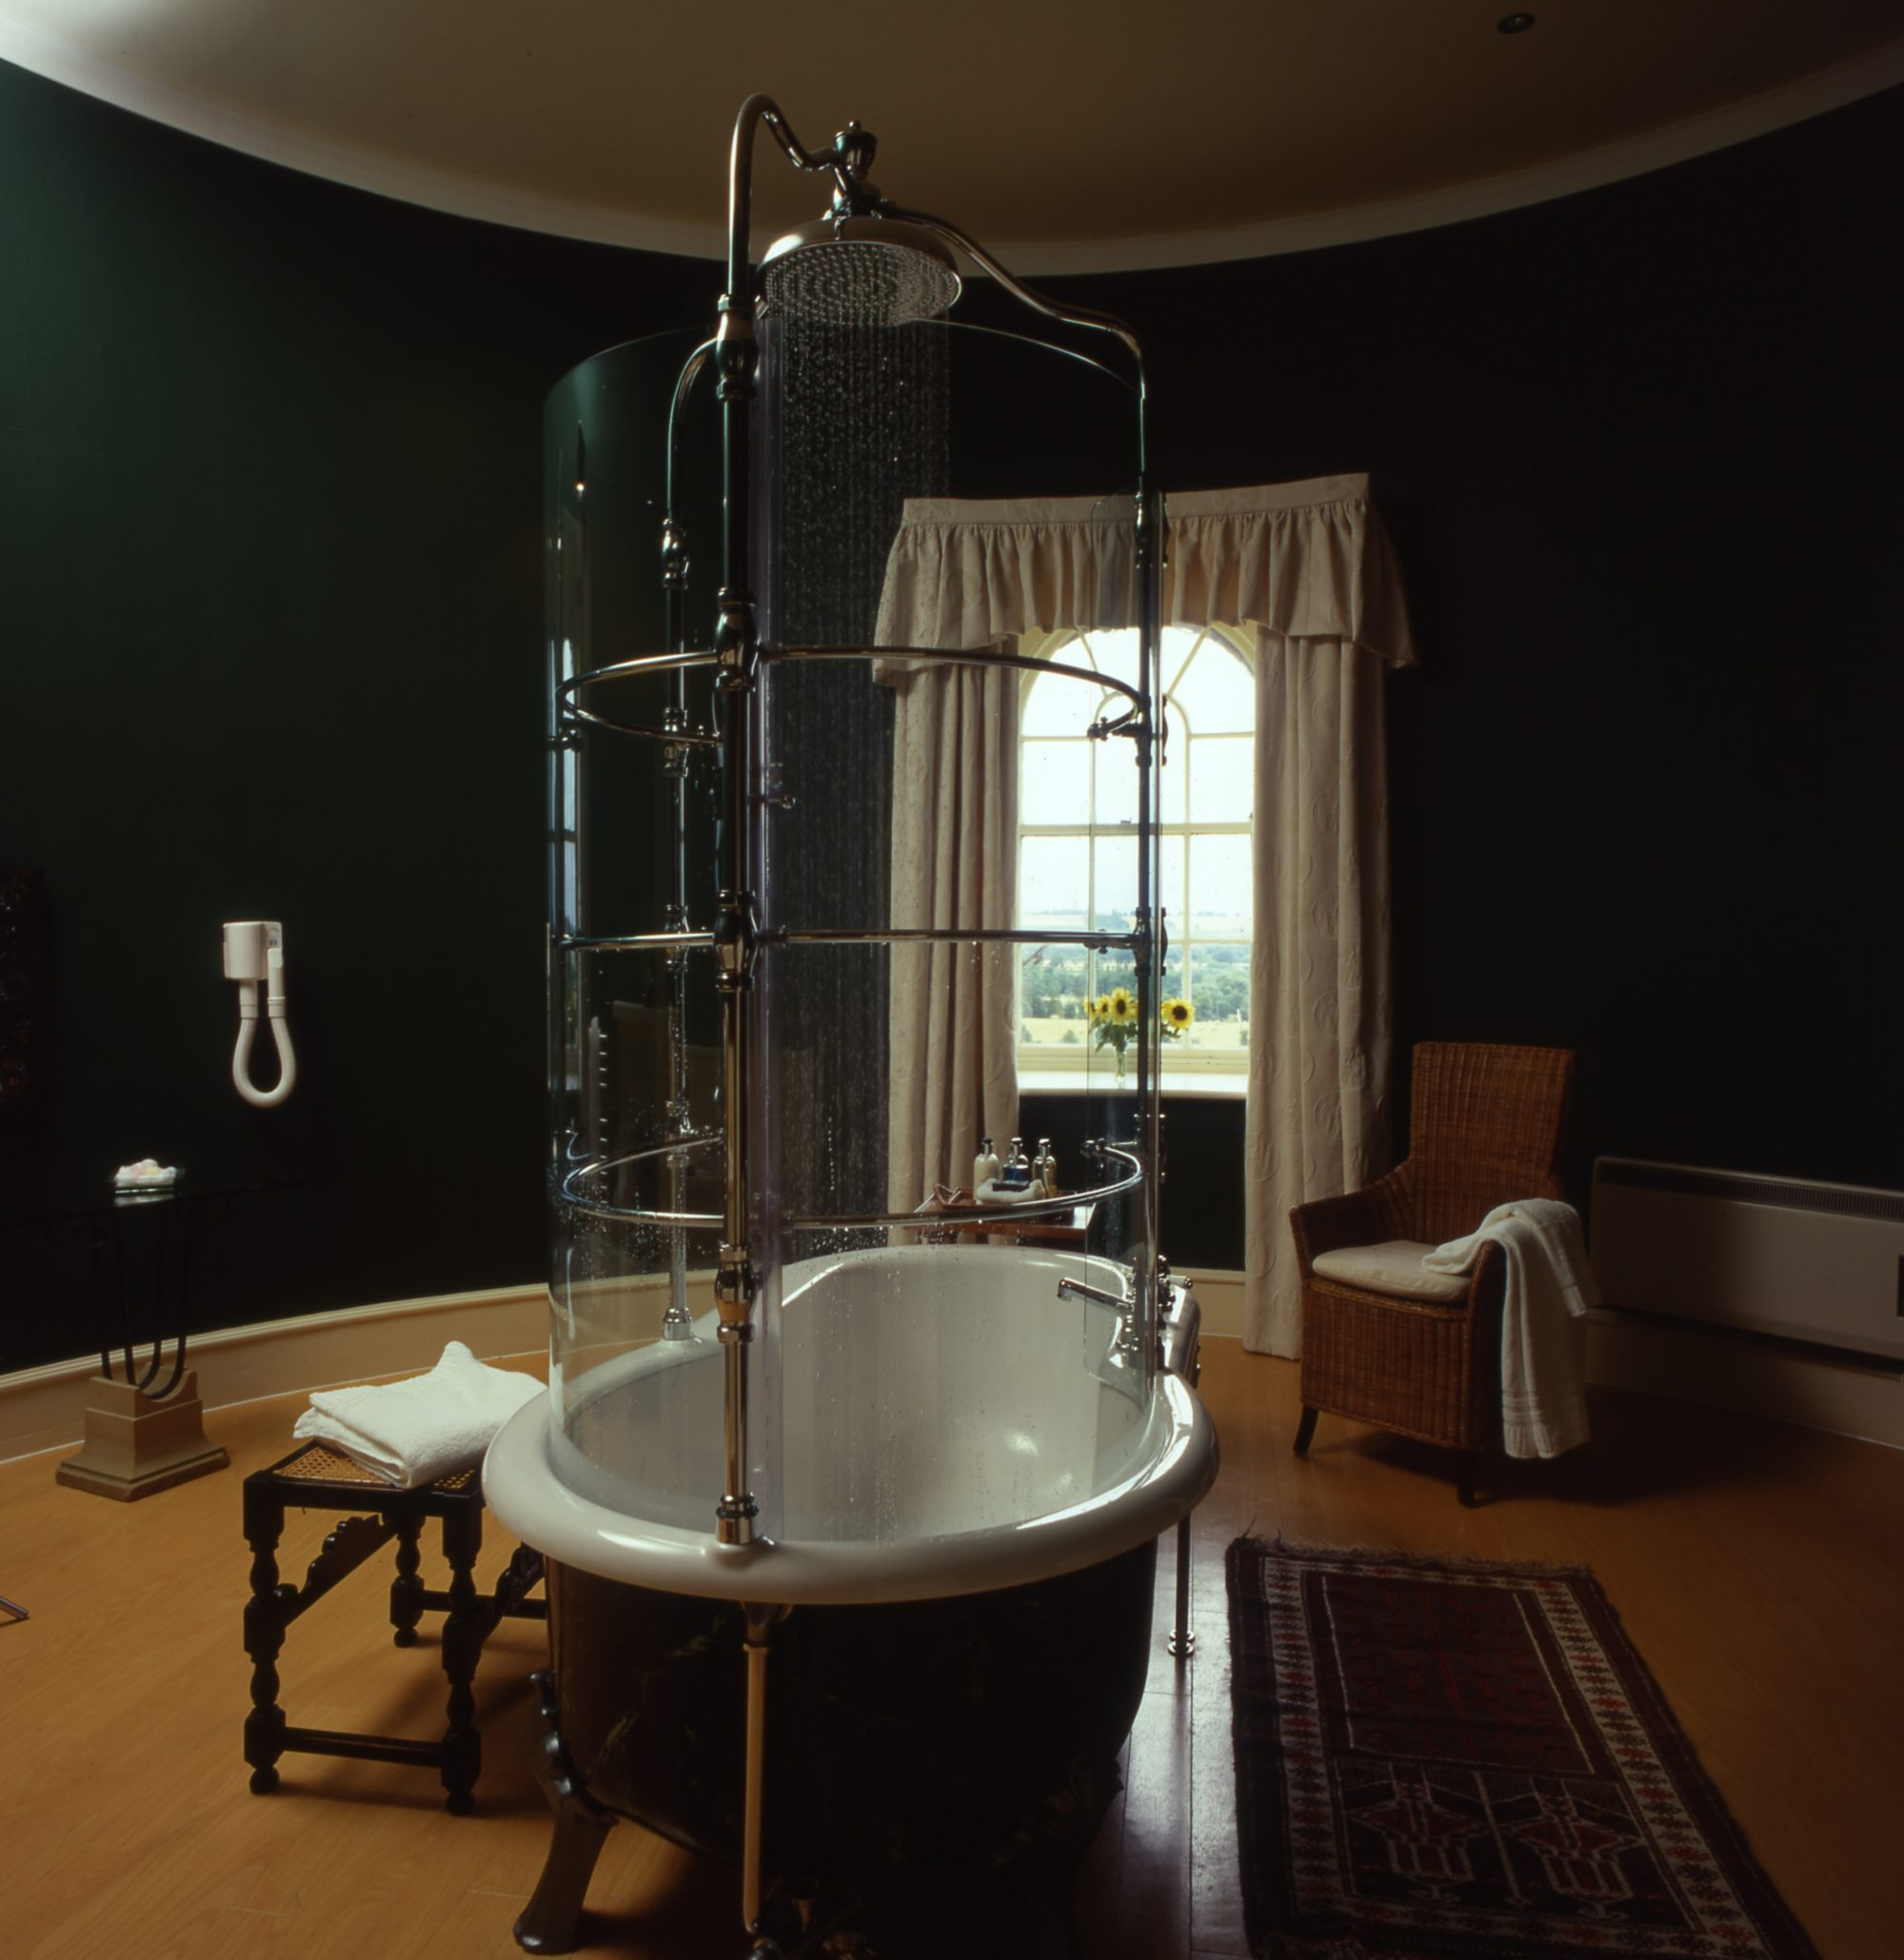 Swinton Park Turret Bathroom